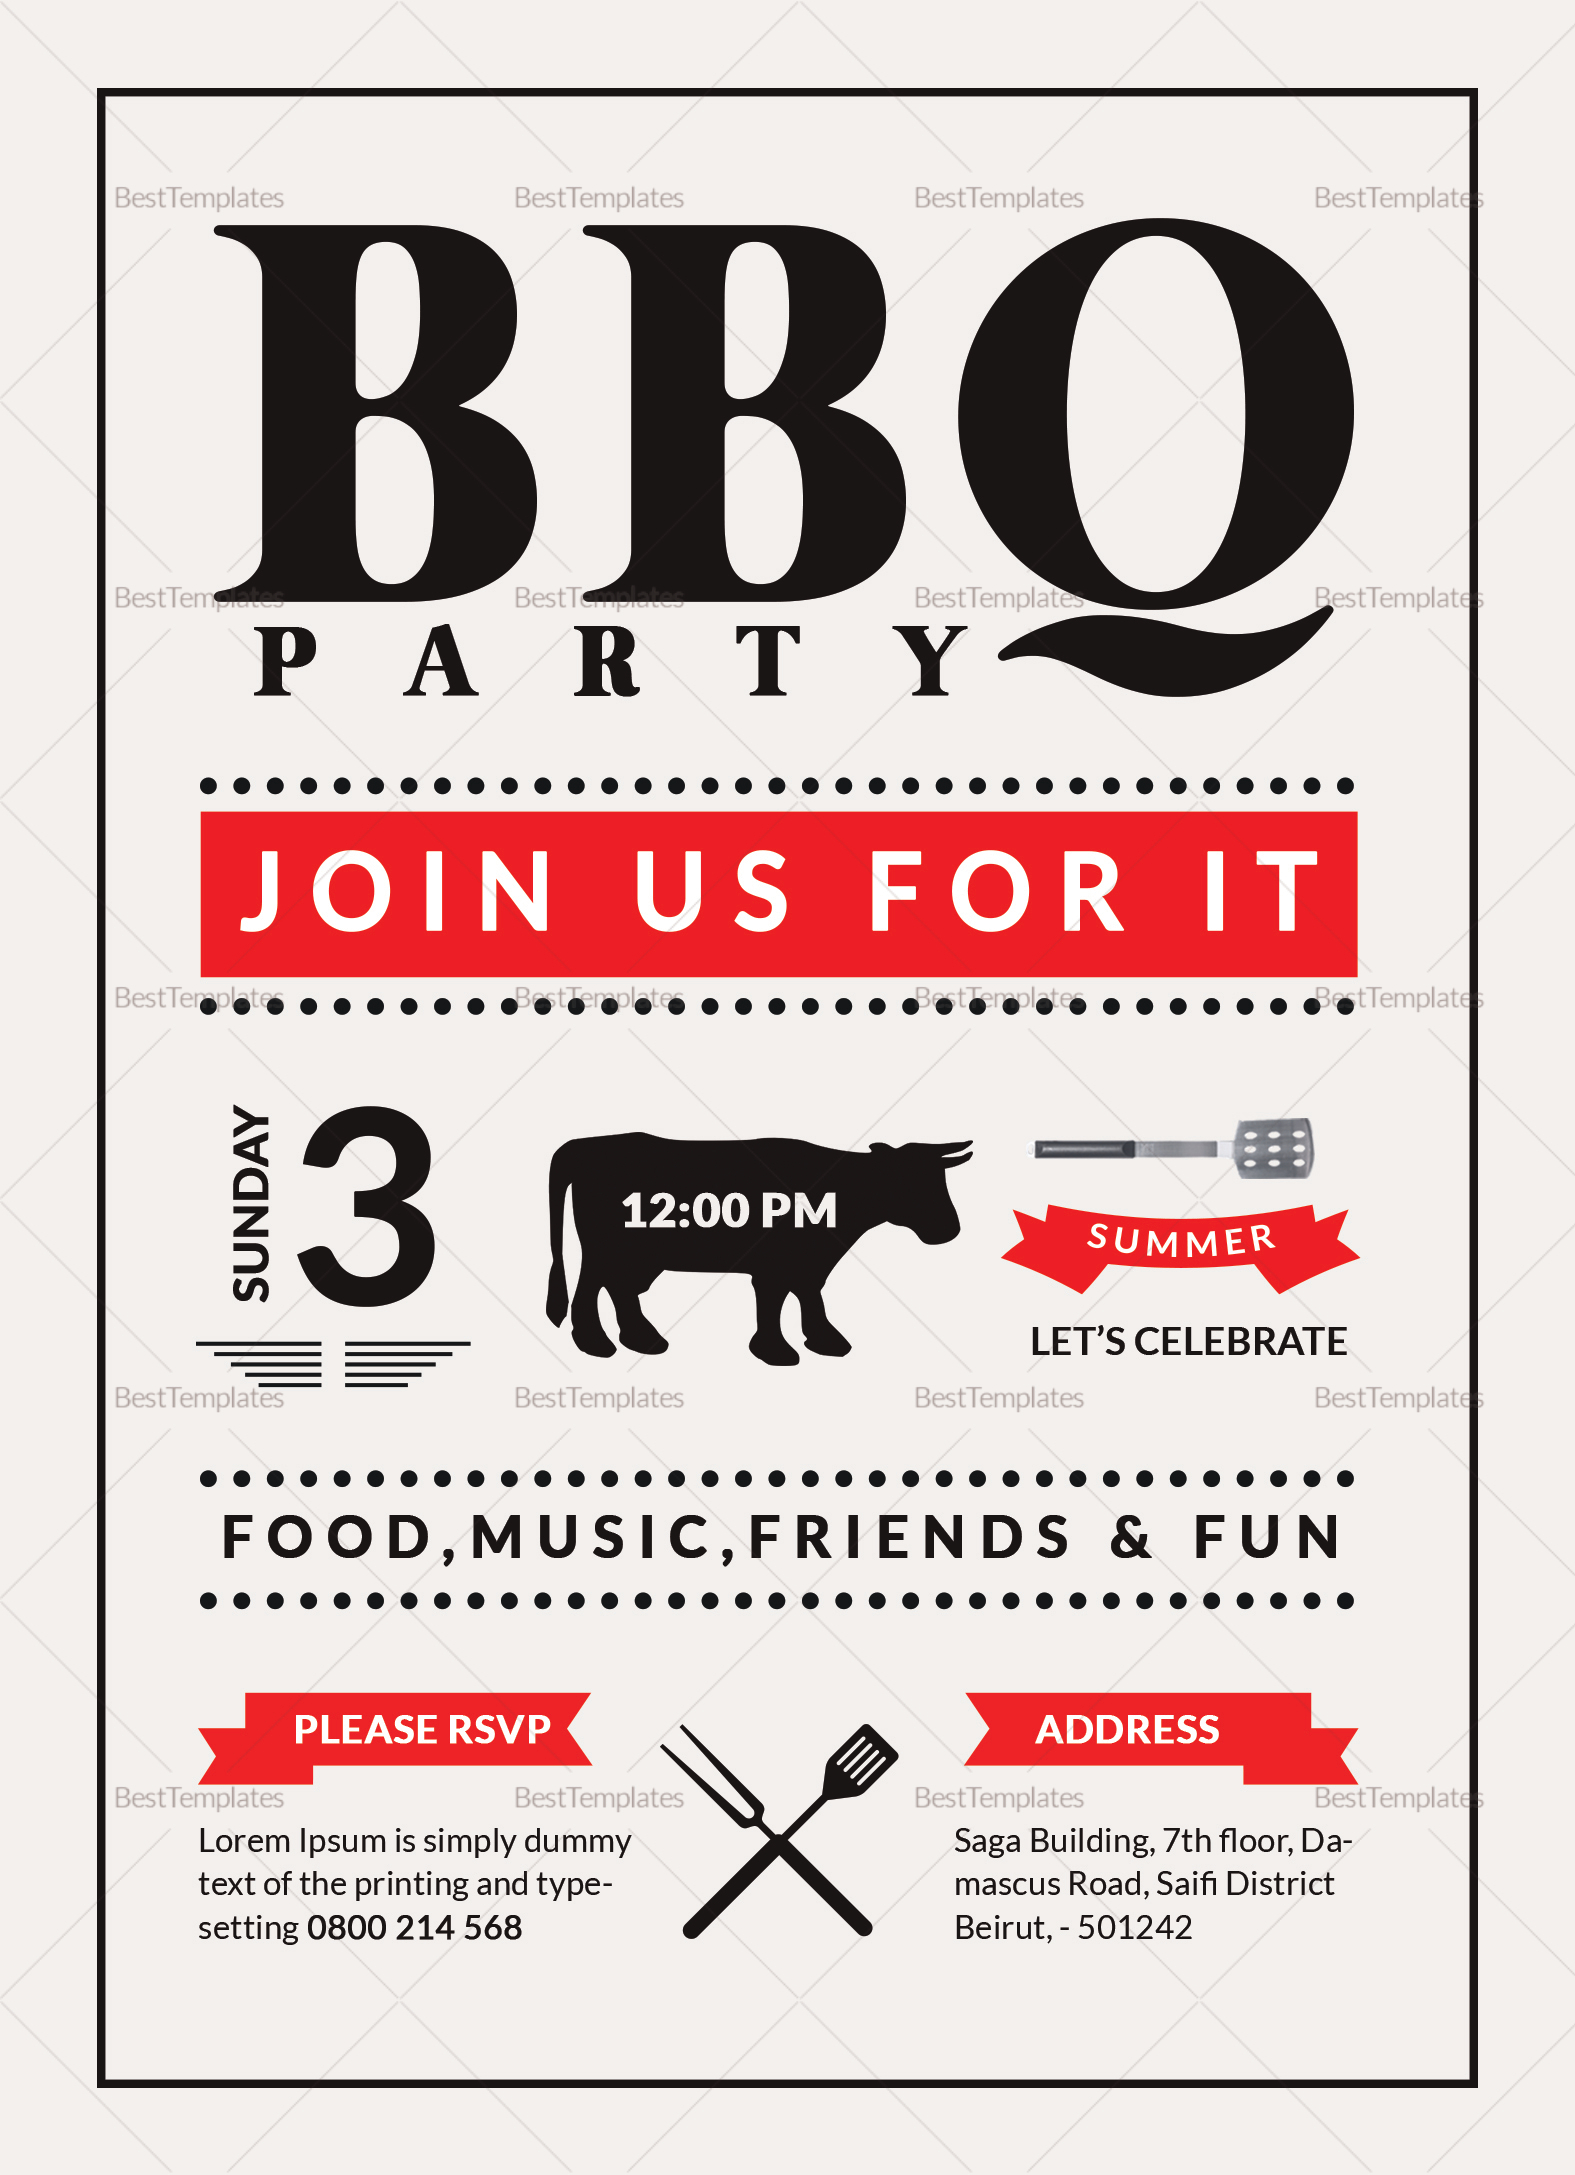 Barbecue Party Invitation Design Template